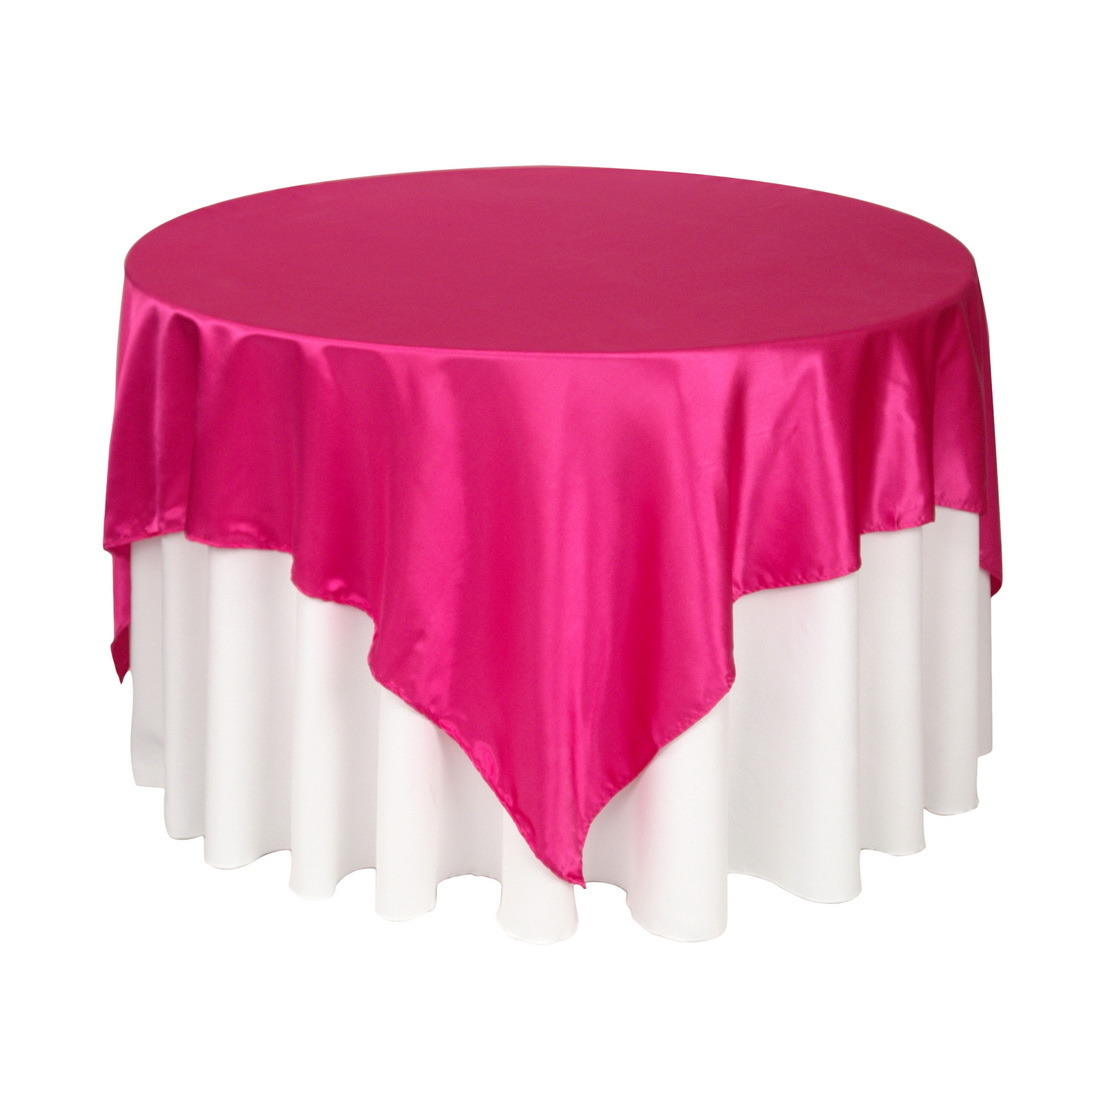 wedding chair covers wholesale china allsteel relate instructions banquet table cover overlay